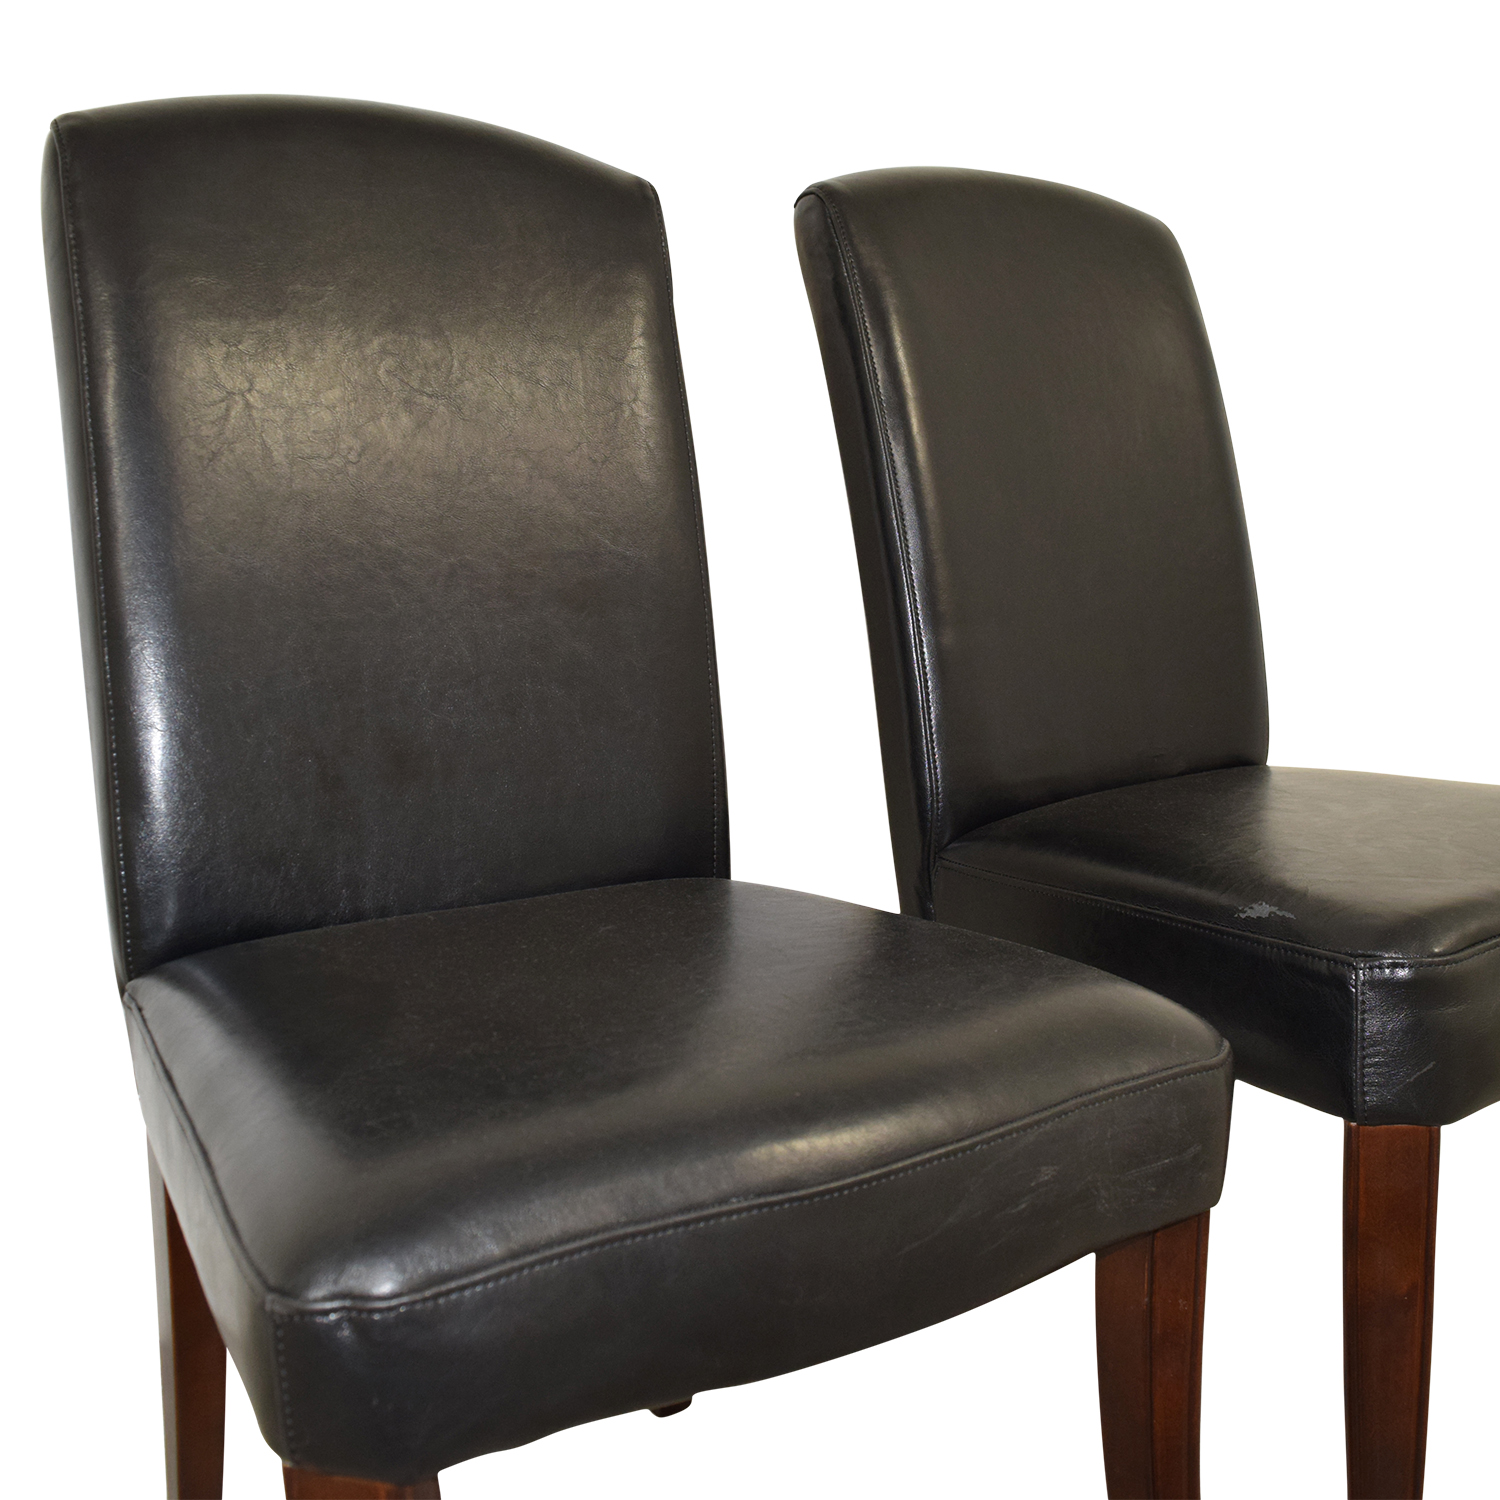 Black Padded Leatherette High Back Chairs on sale